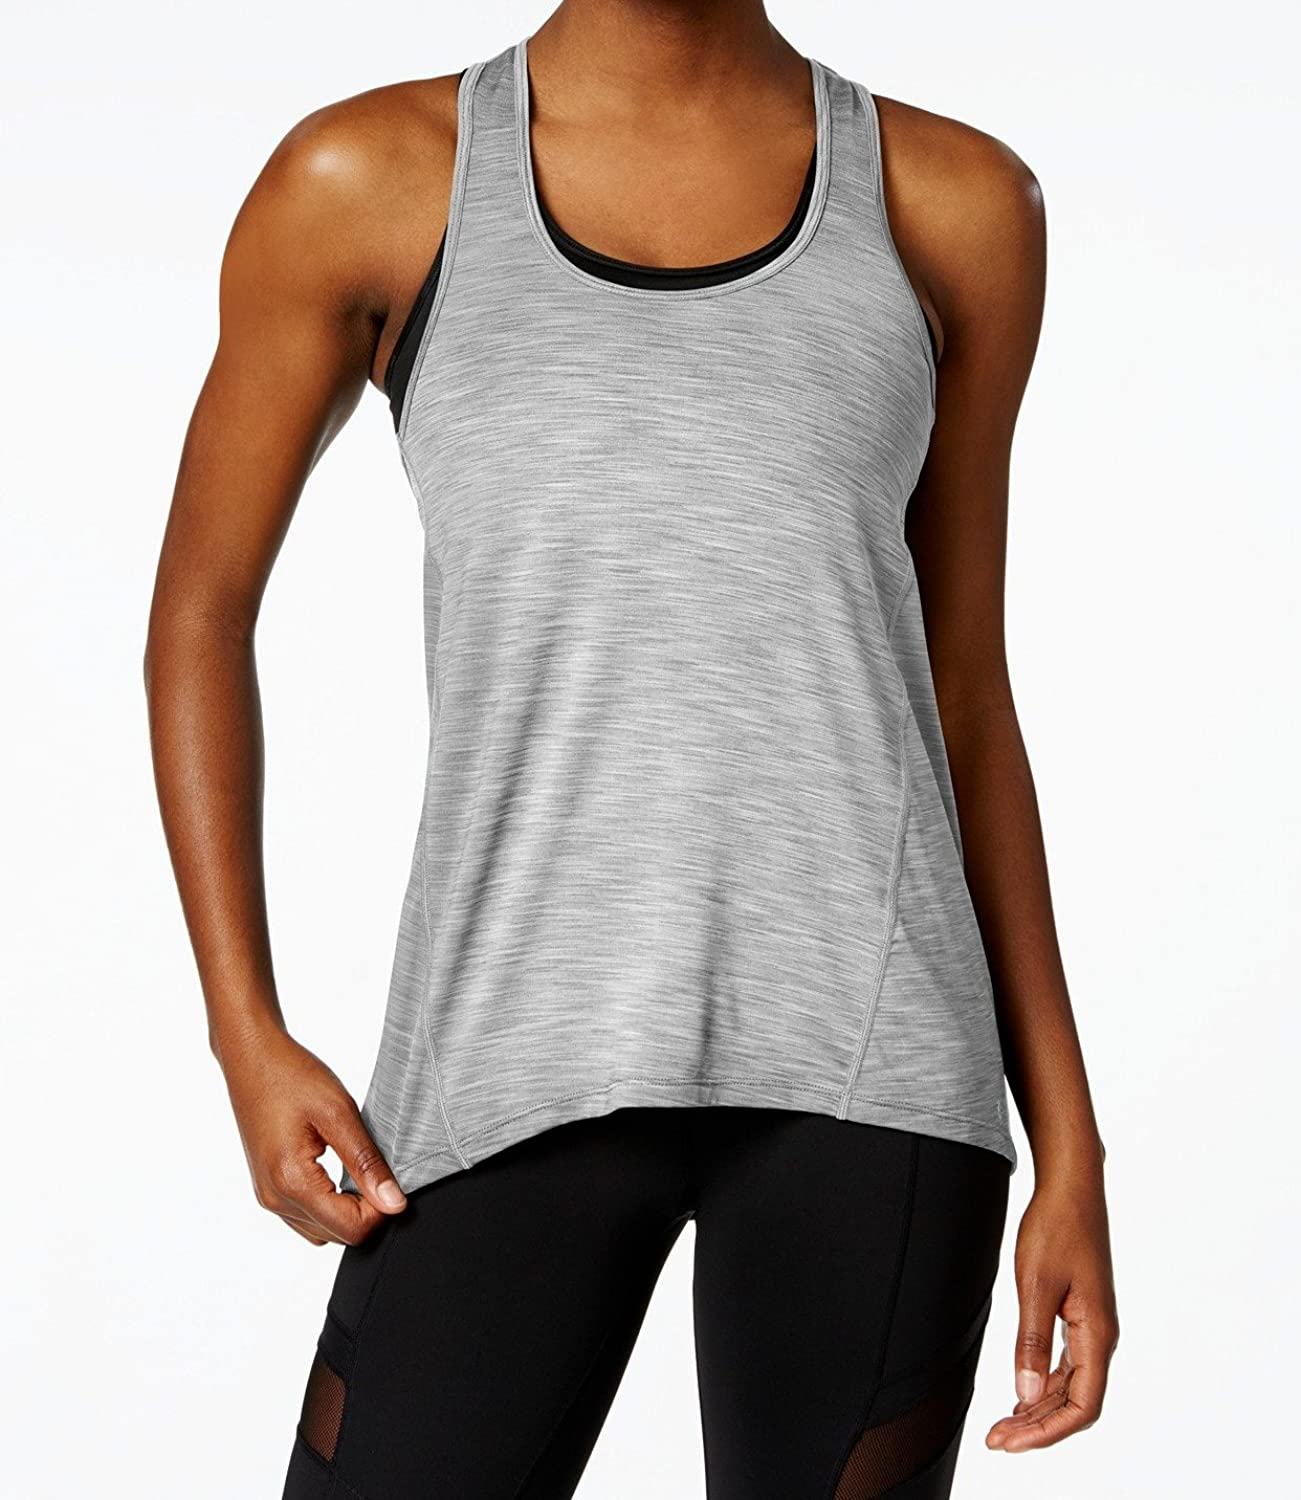 Betsey Johnson Women's SpaceDyed Tank Top, Quick Silver, Large